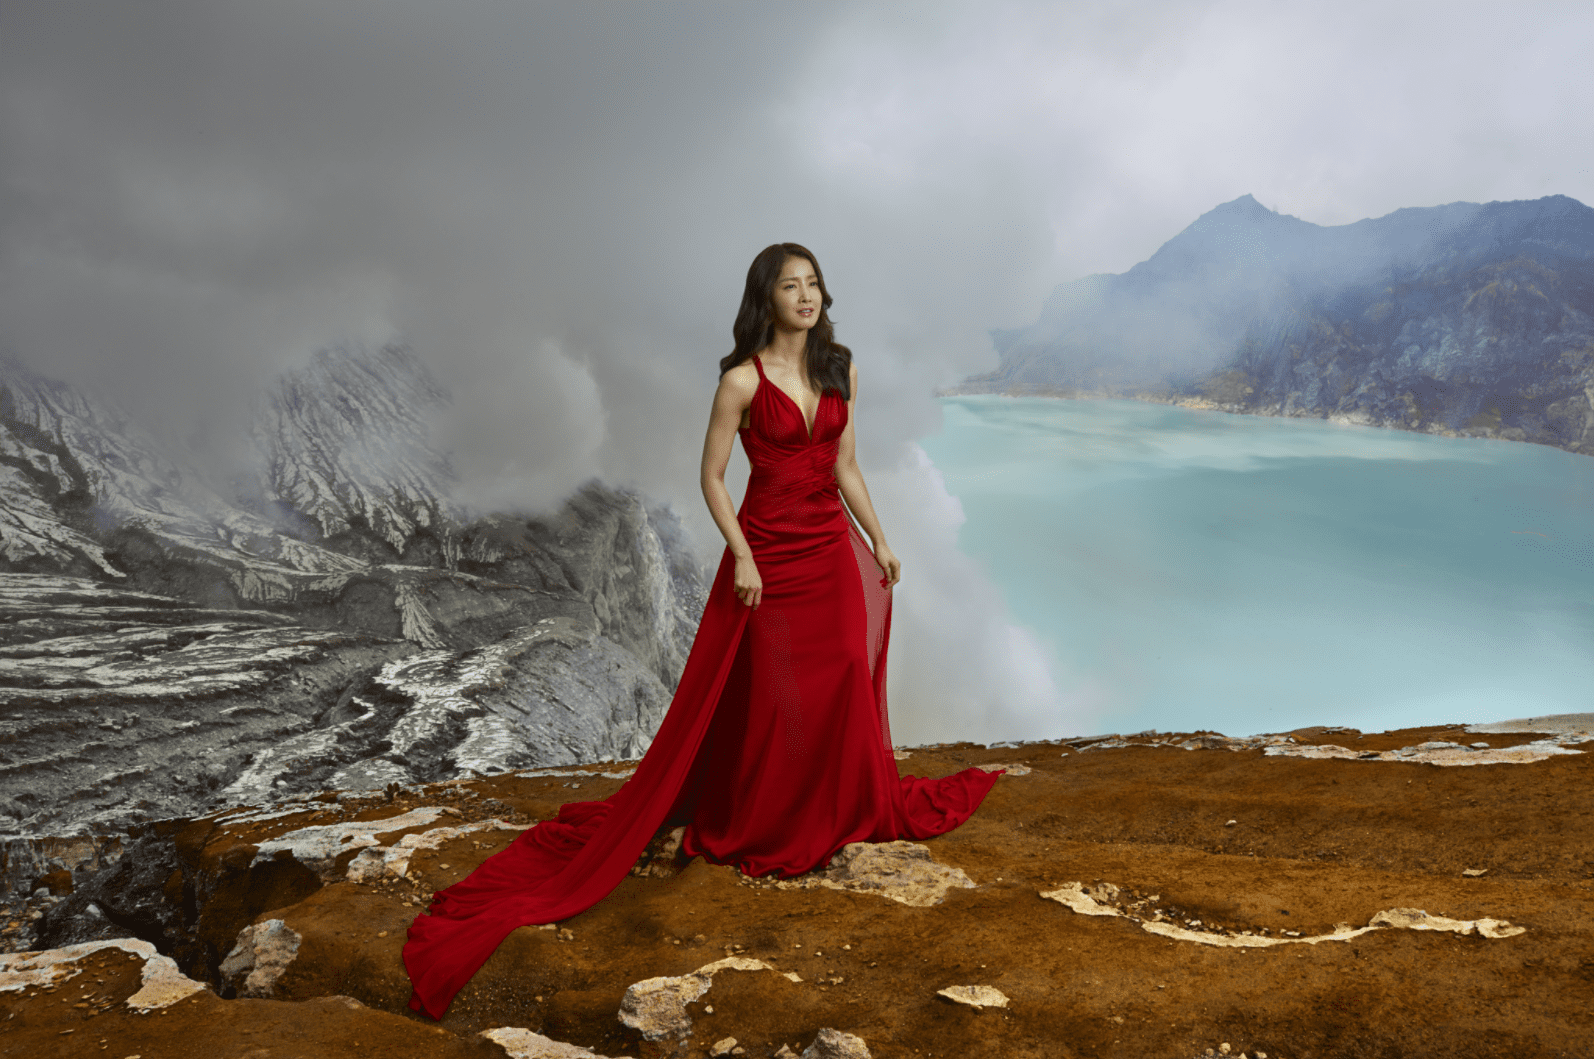 Lee Si Young Braves The Wild And Puts Her Skin To The Test In New Beauty Campaign